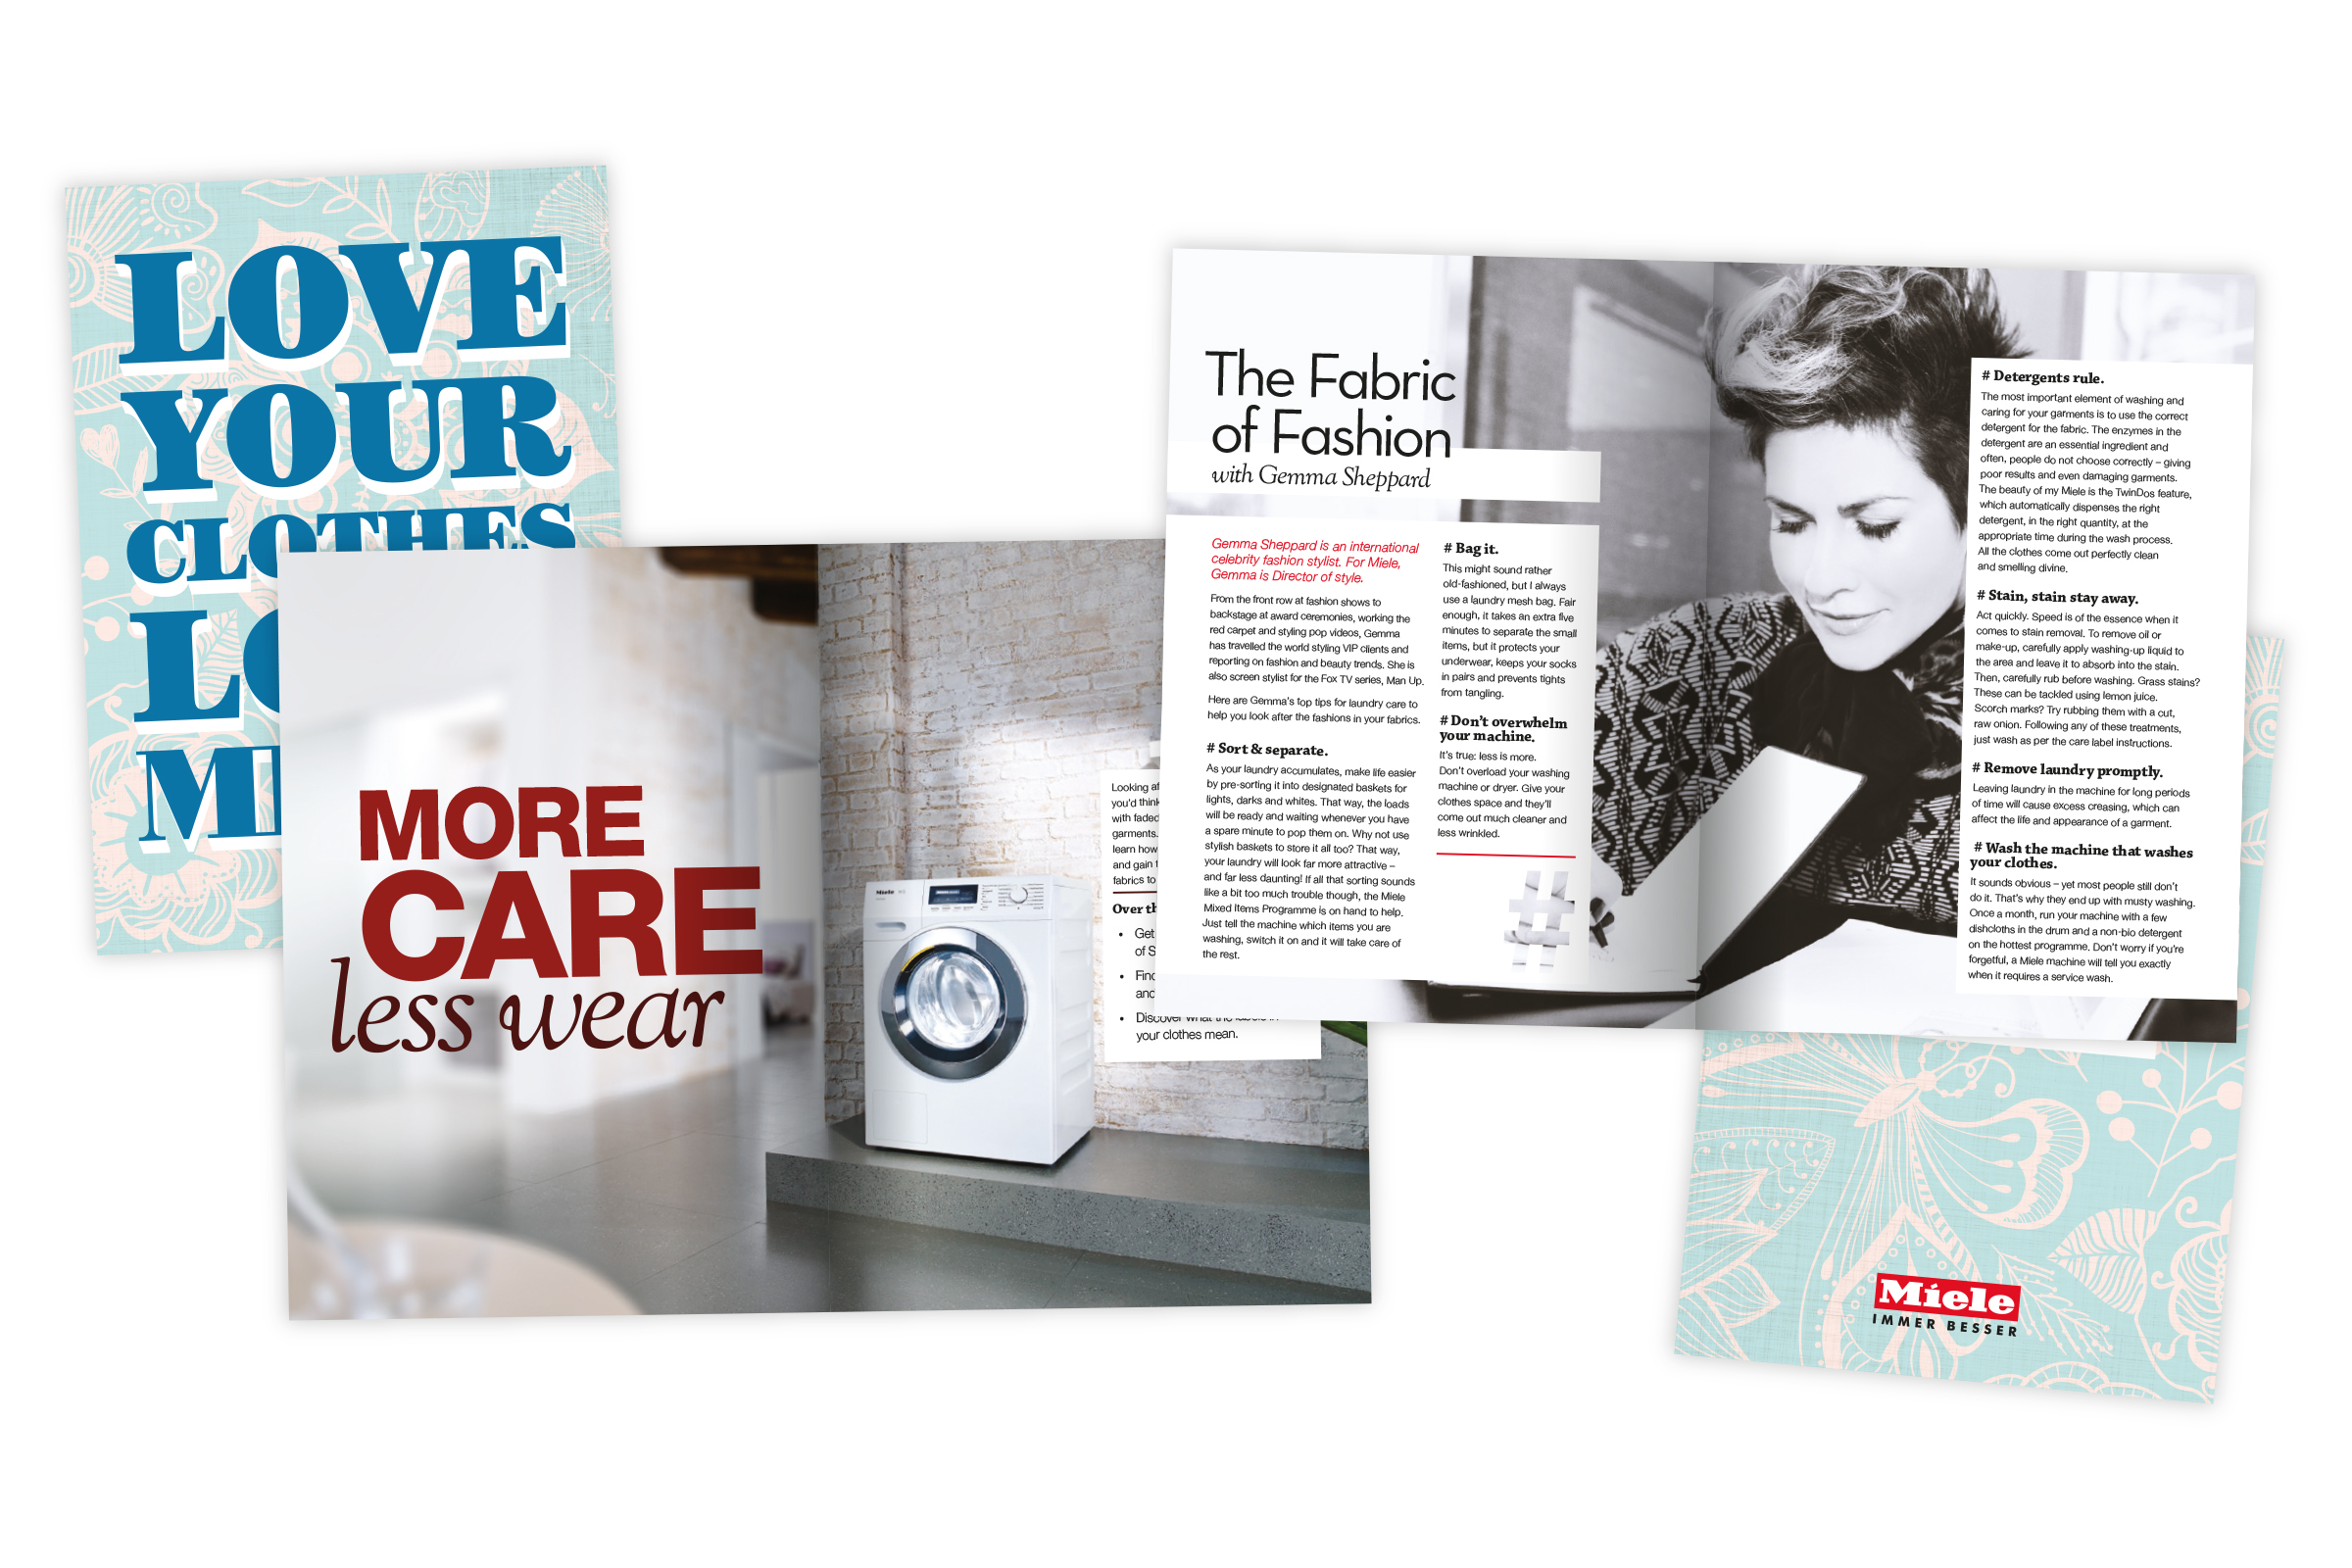 Miele – Laundry care brochure